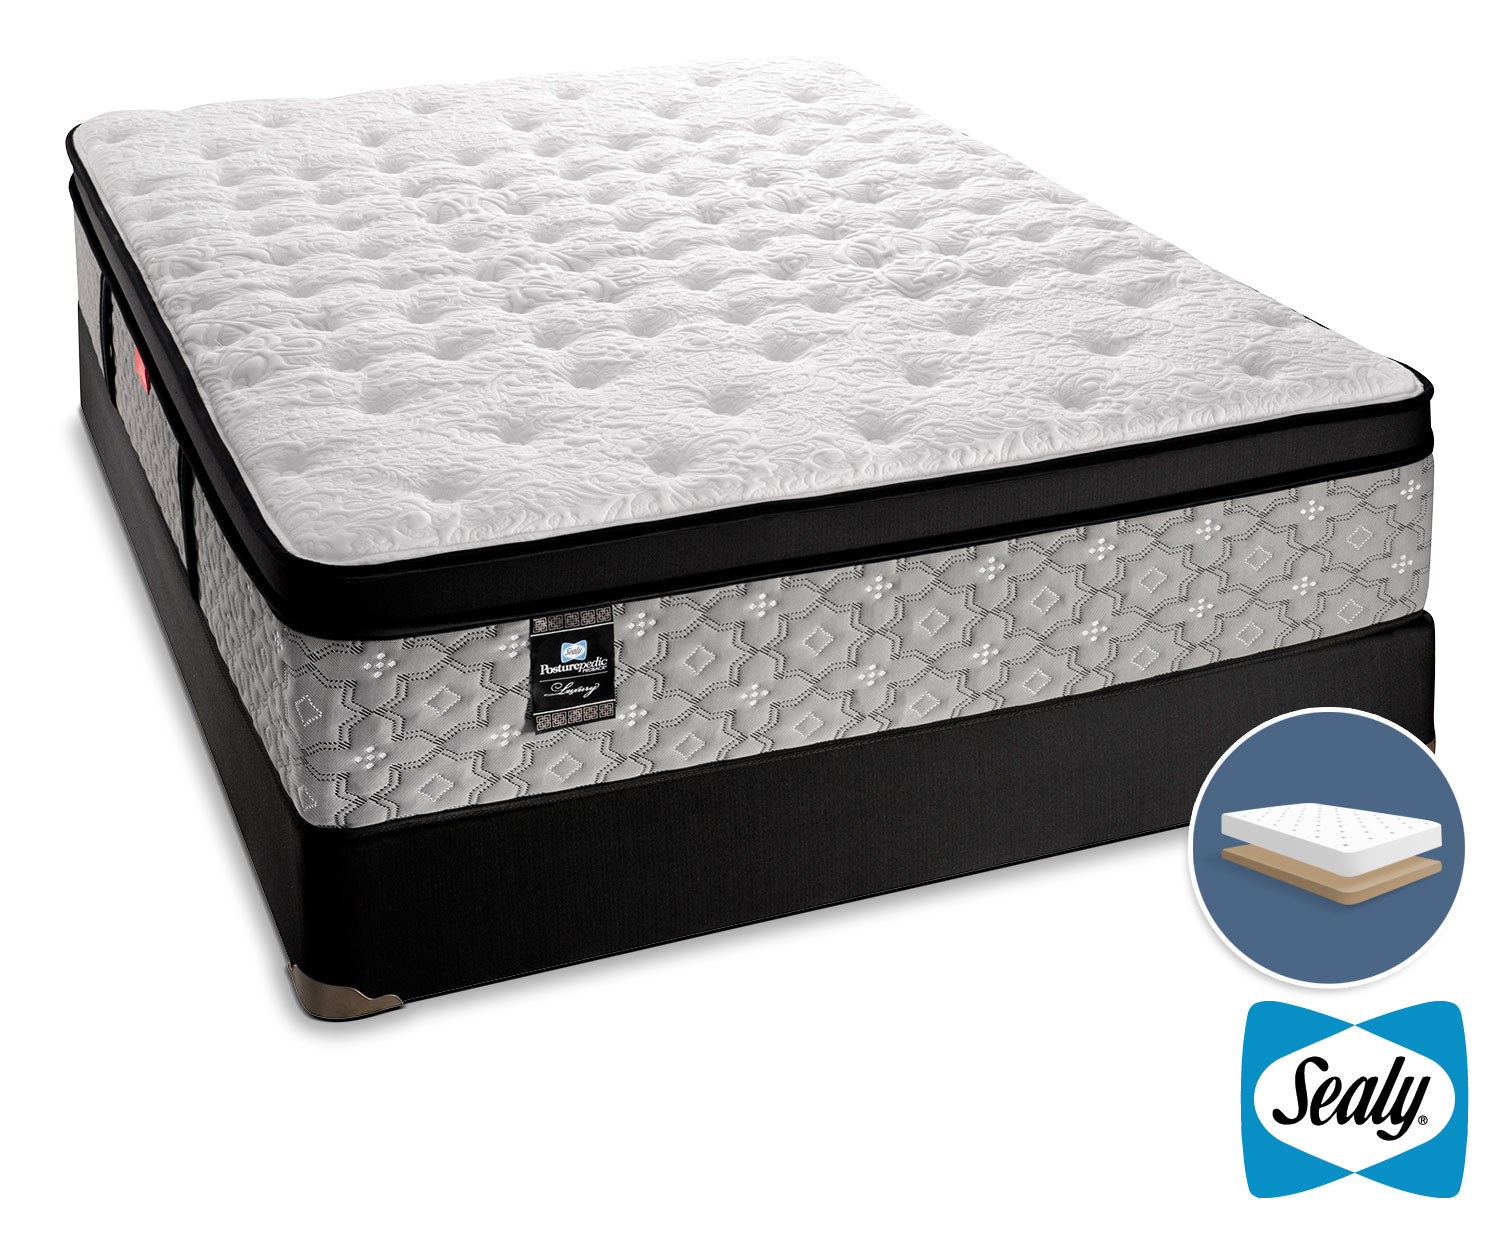 Mattresses and Bedding - Sealy Hemmingway Cushion Firm Queen Mattress and Low-Profile Boxspring Set